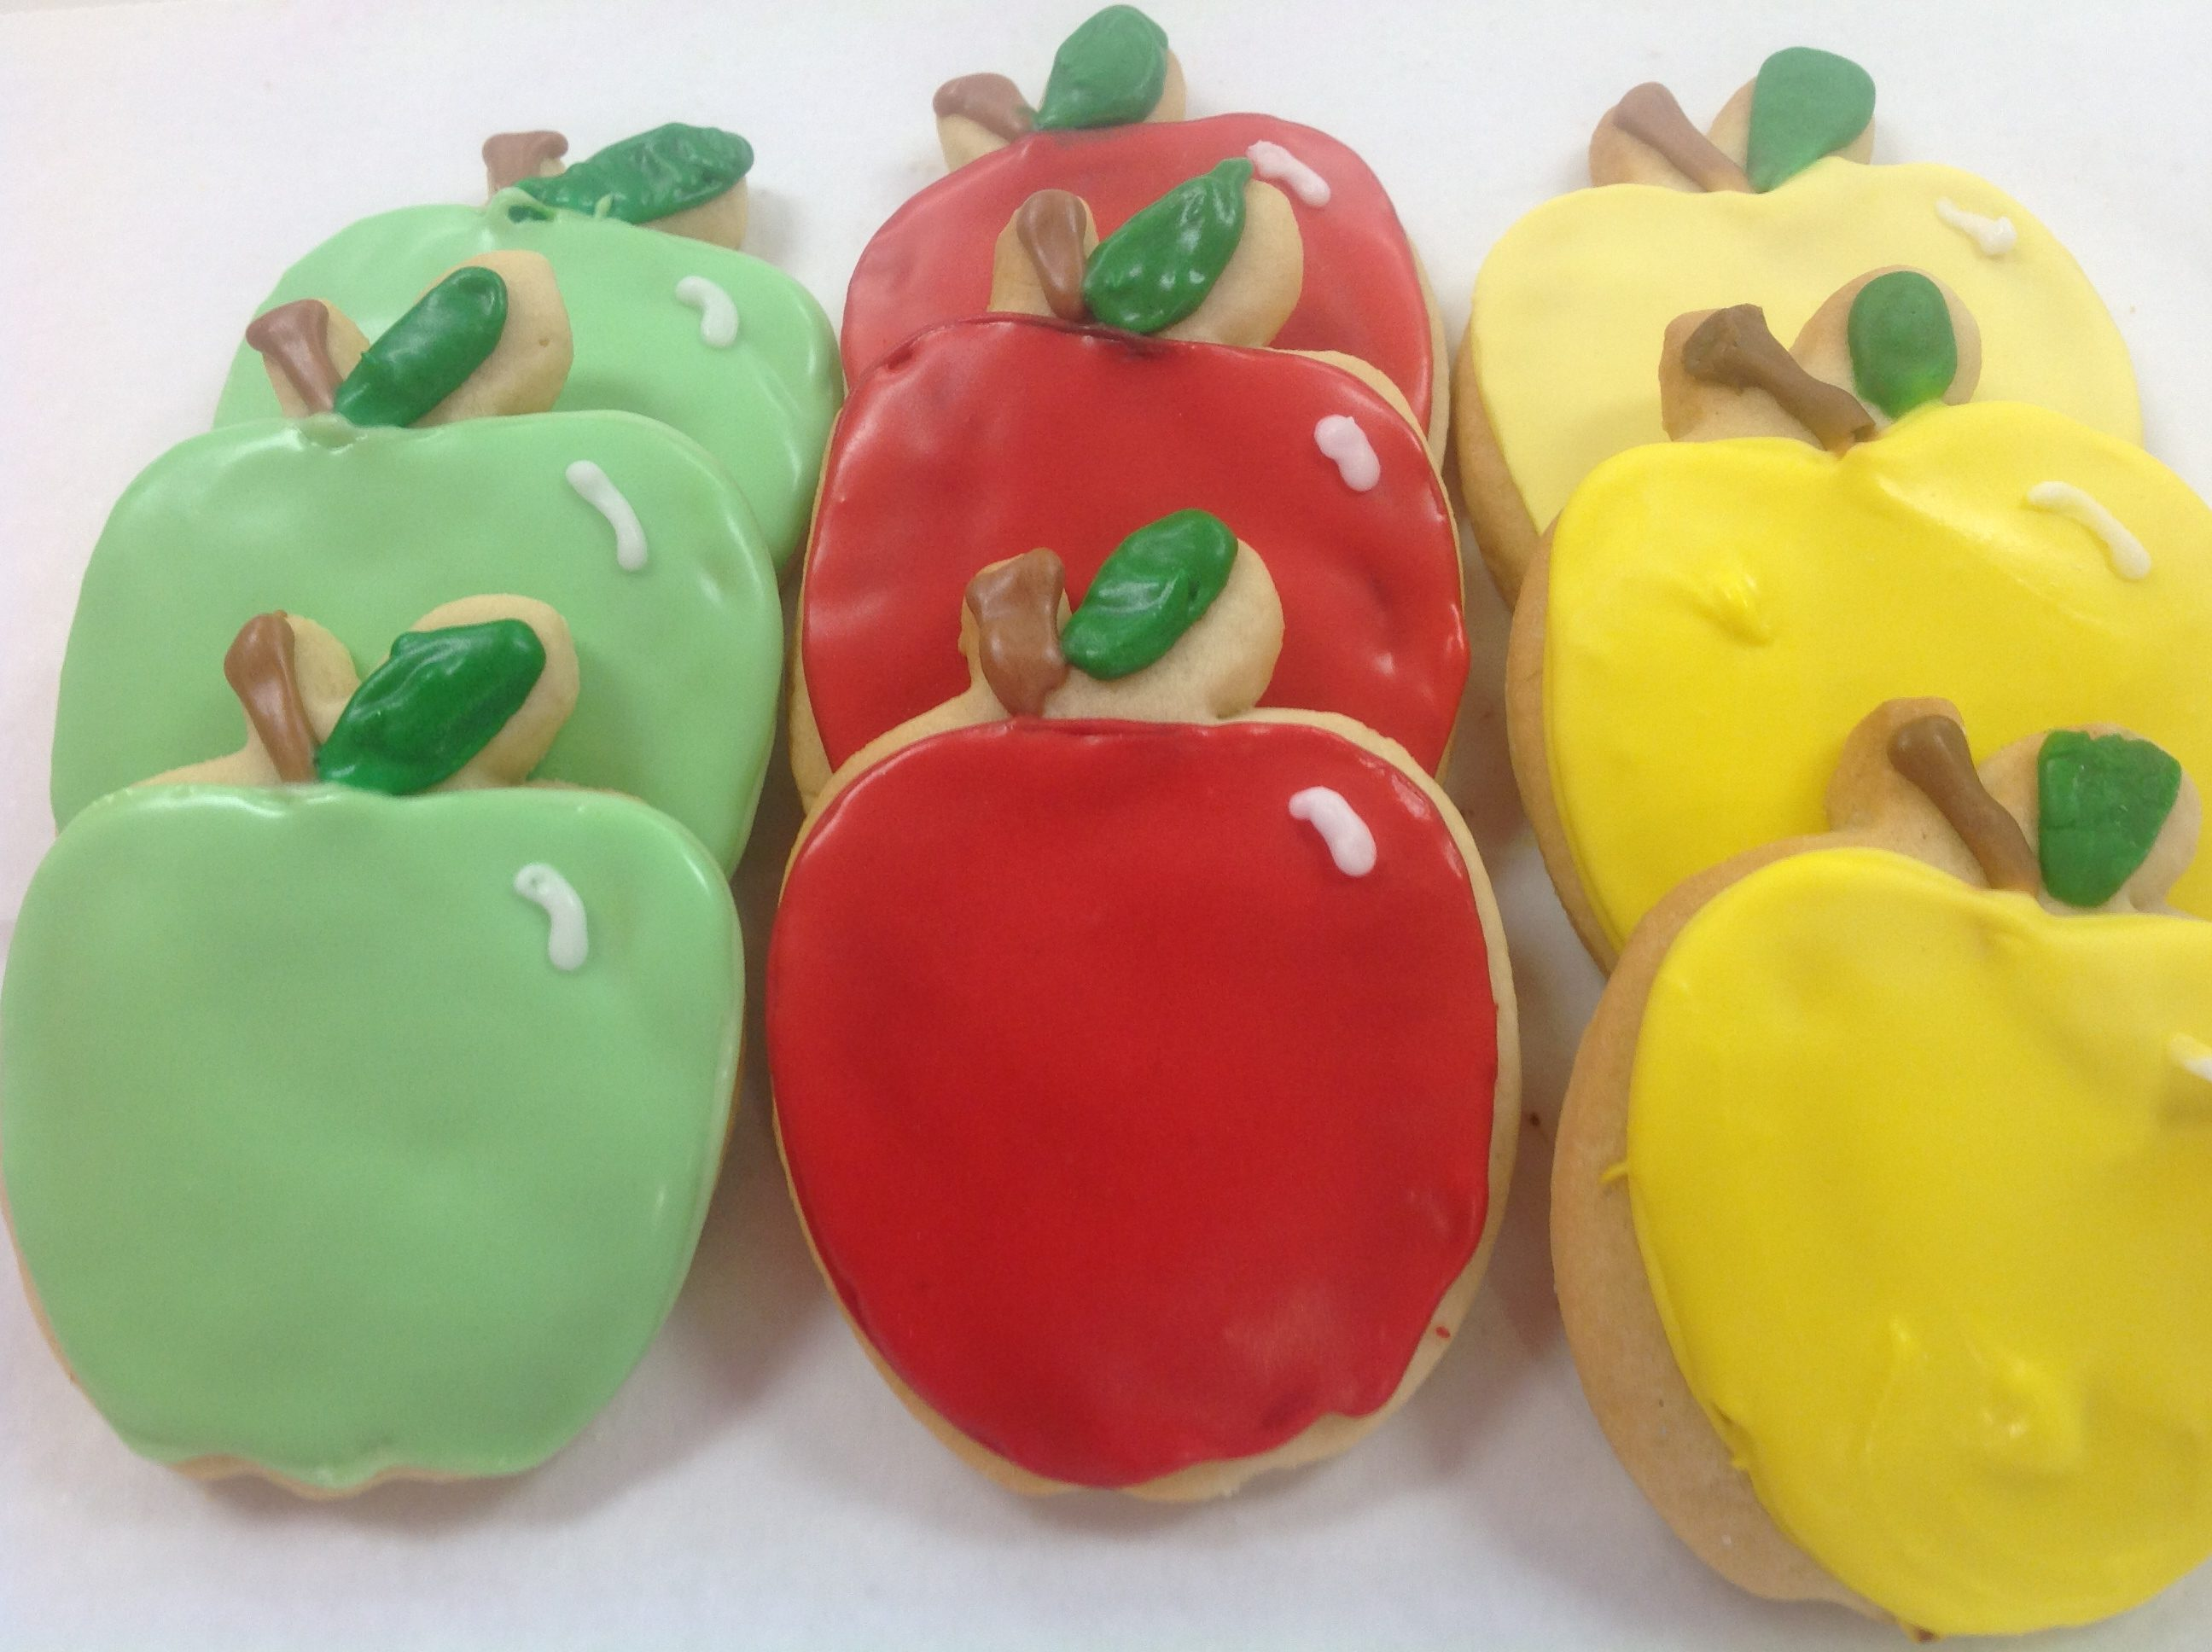 Cutout cookies at Dolce and Biscotti Italian Bakery